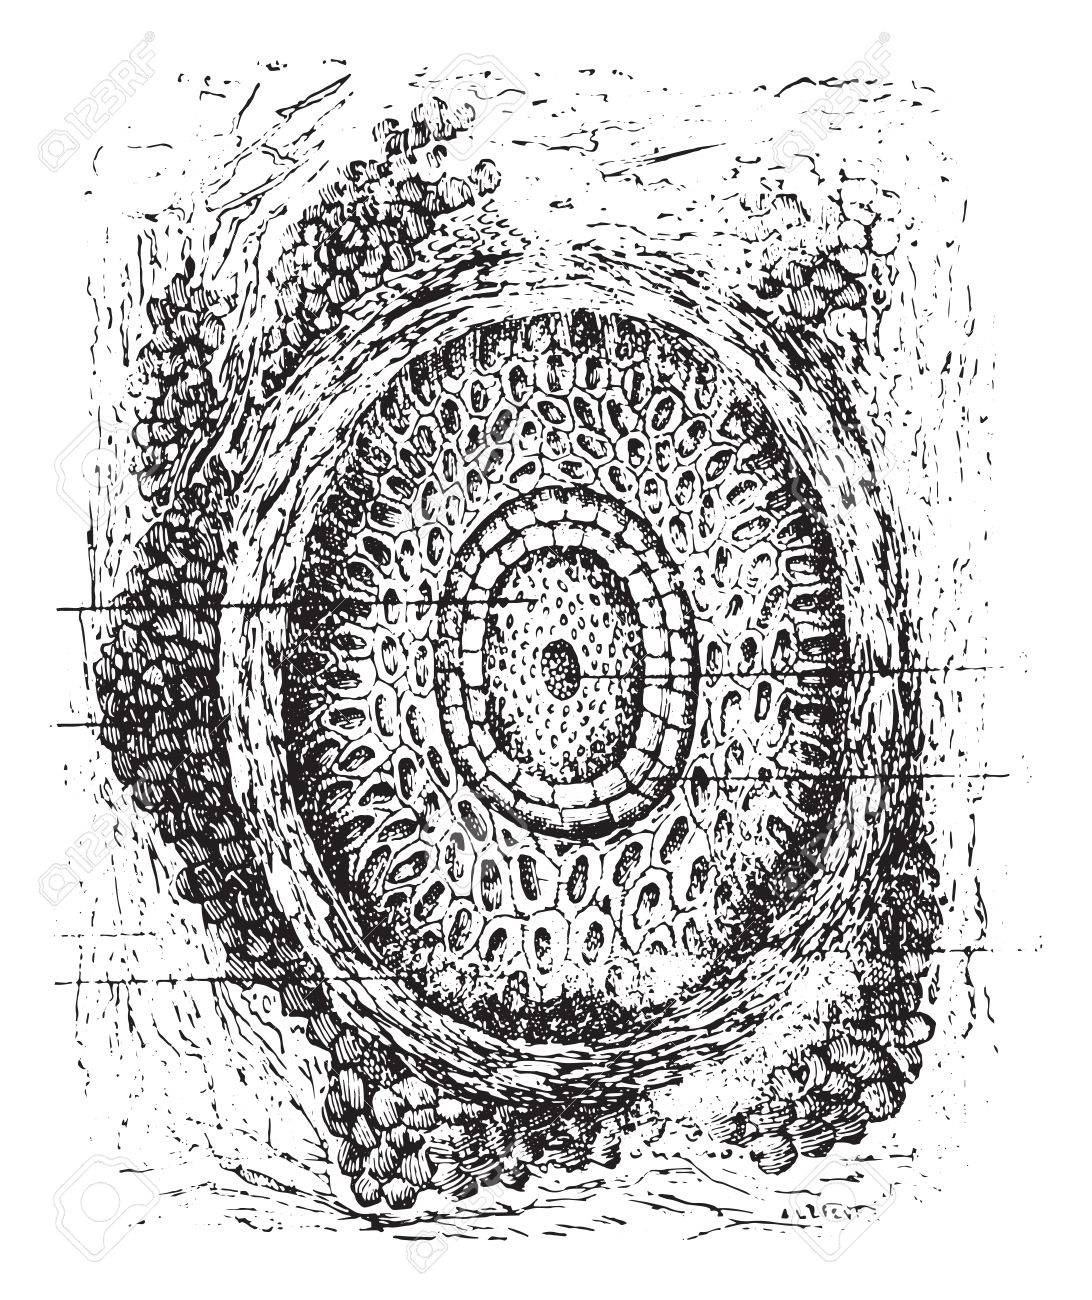 Section of a cilium and its hair follicles, vintage engraved illustration. Usual Medicine Dictionary by Dr Labarthe - 1885. - 35464440